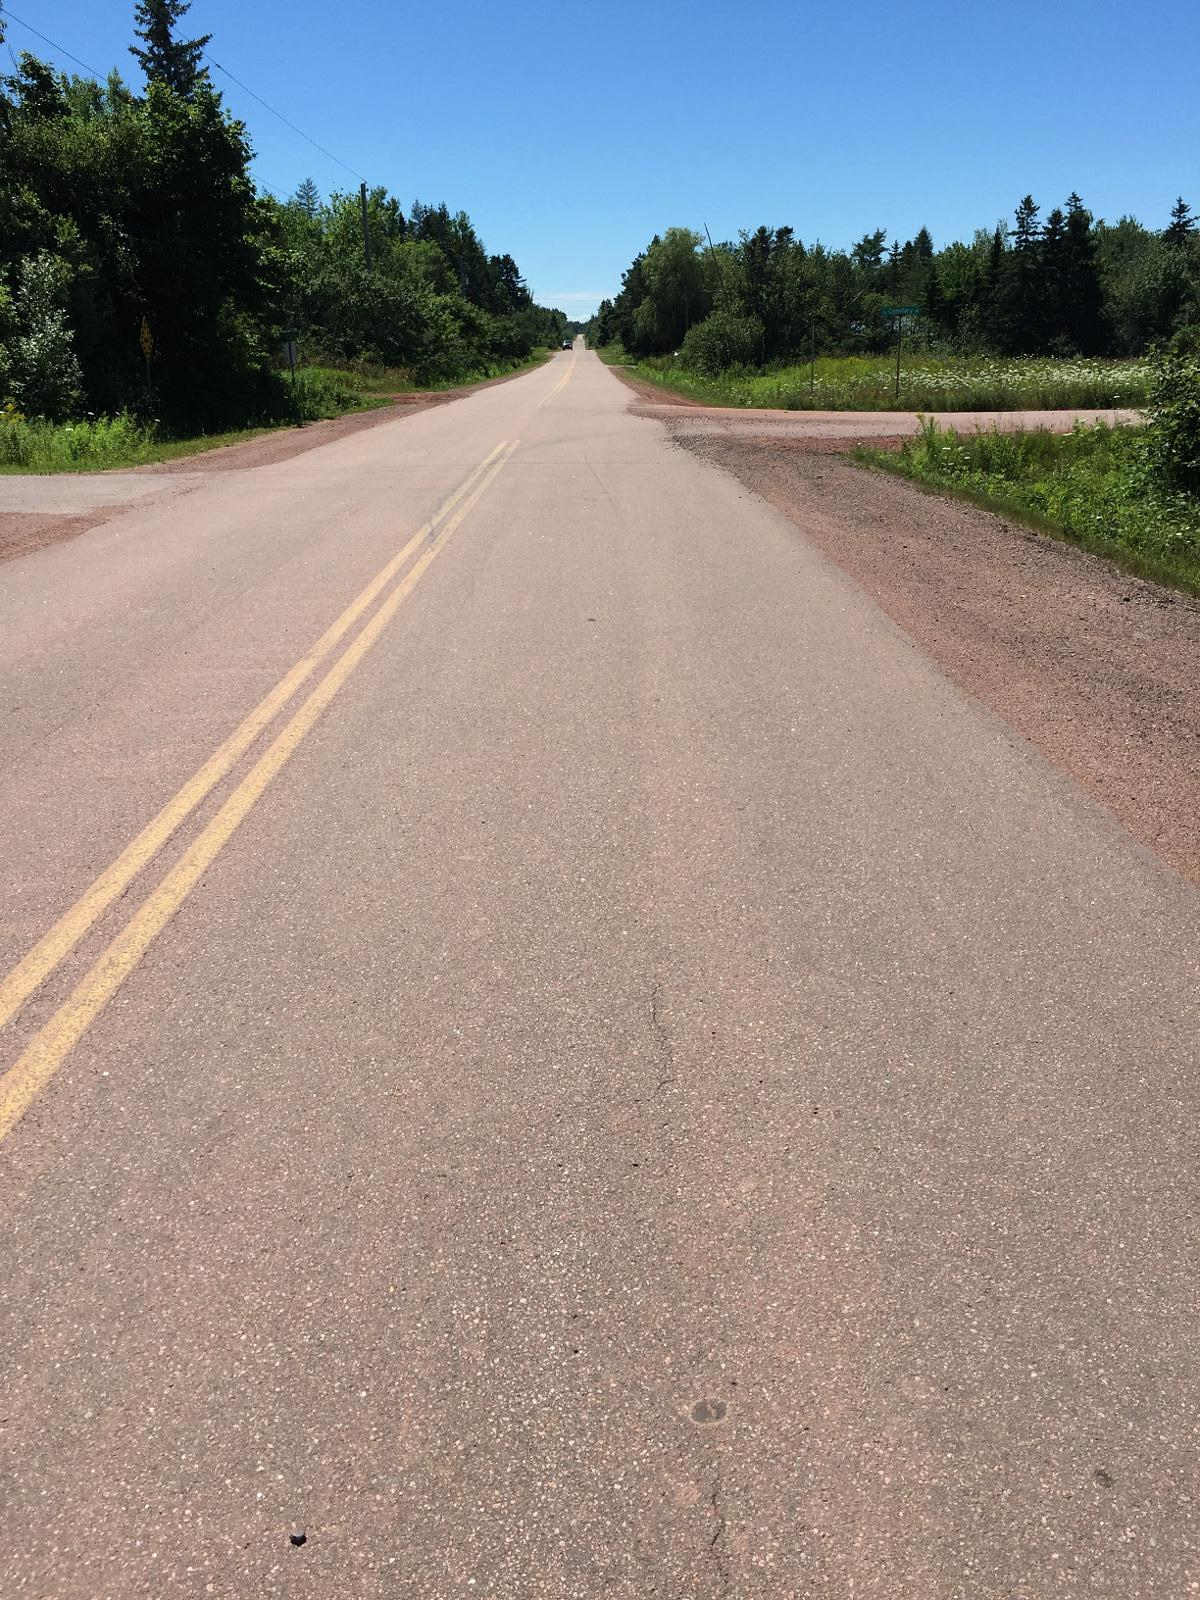 Photo of Km 31.6 Route 14